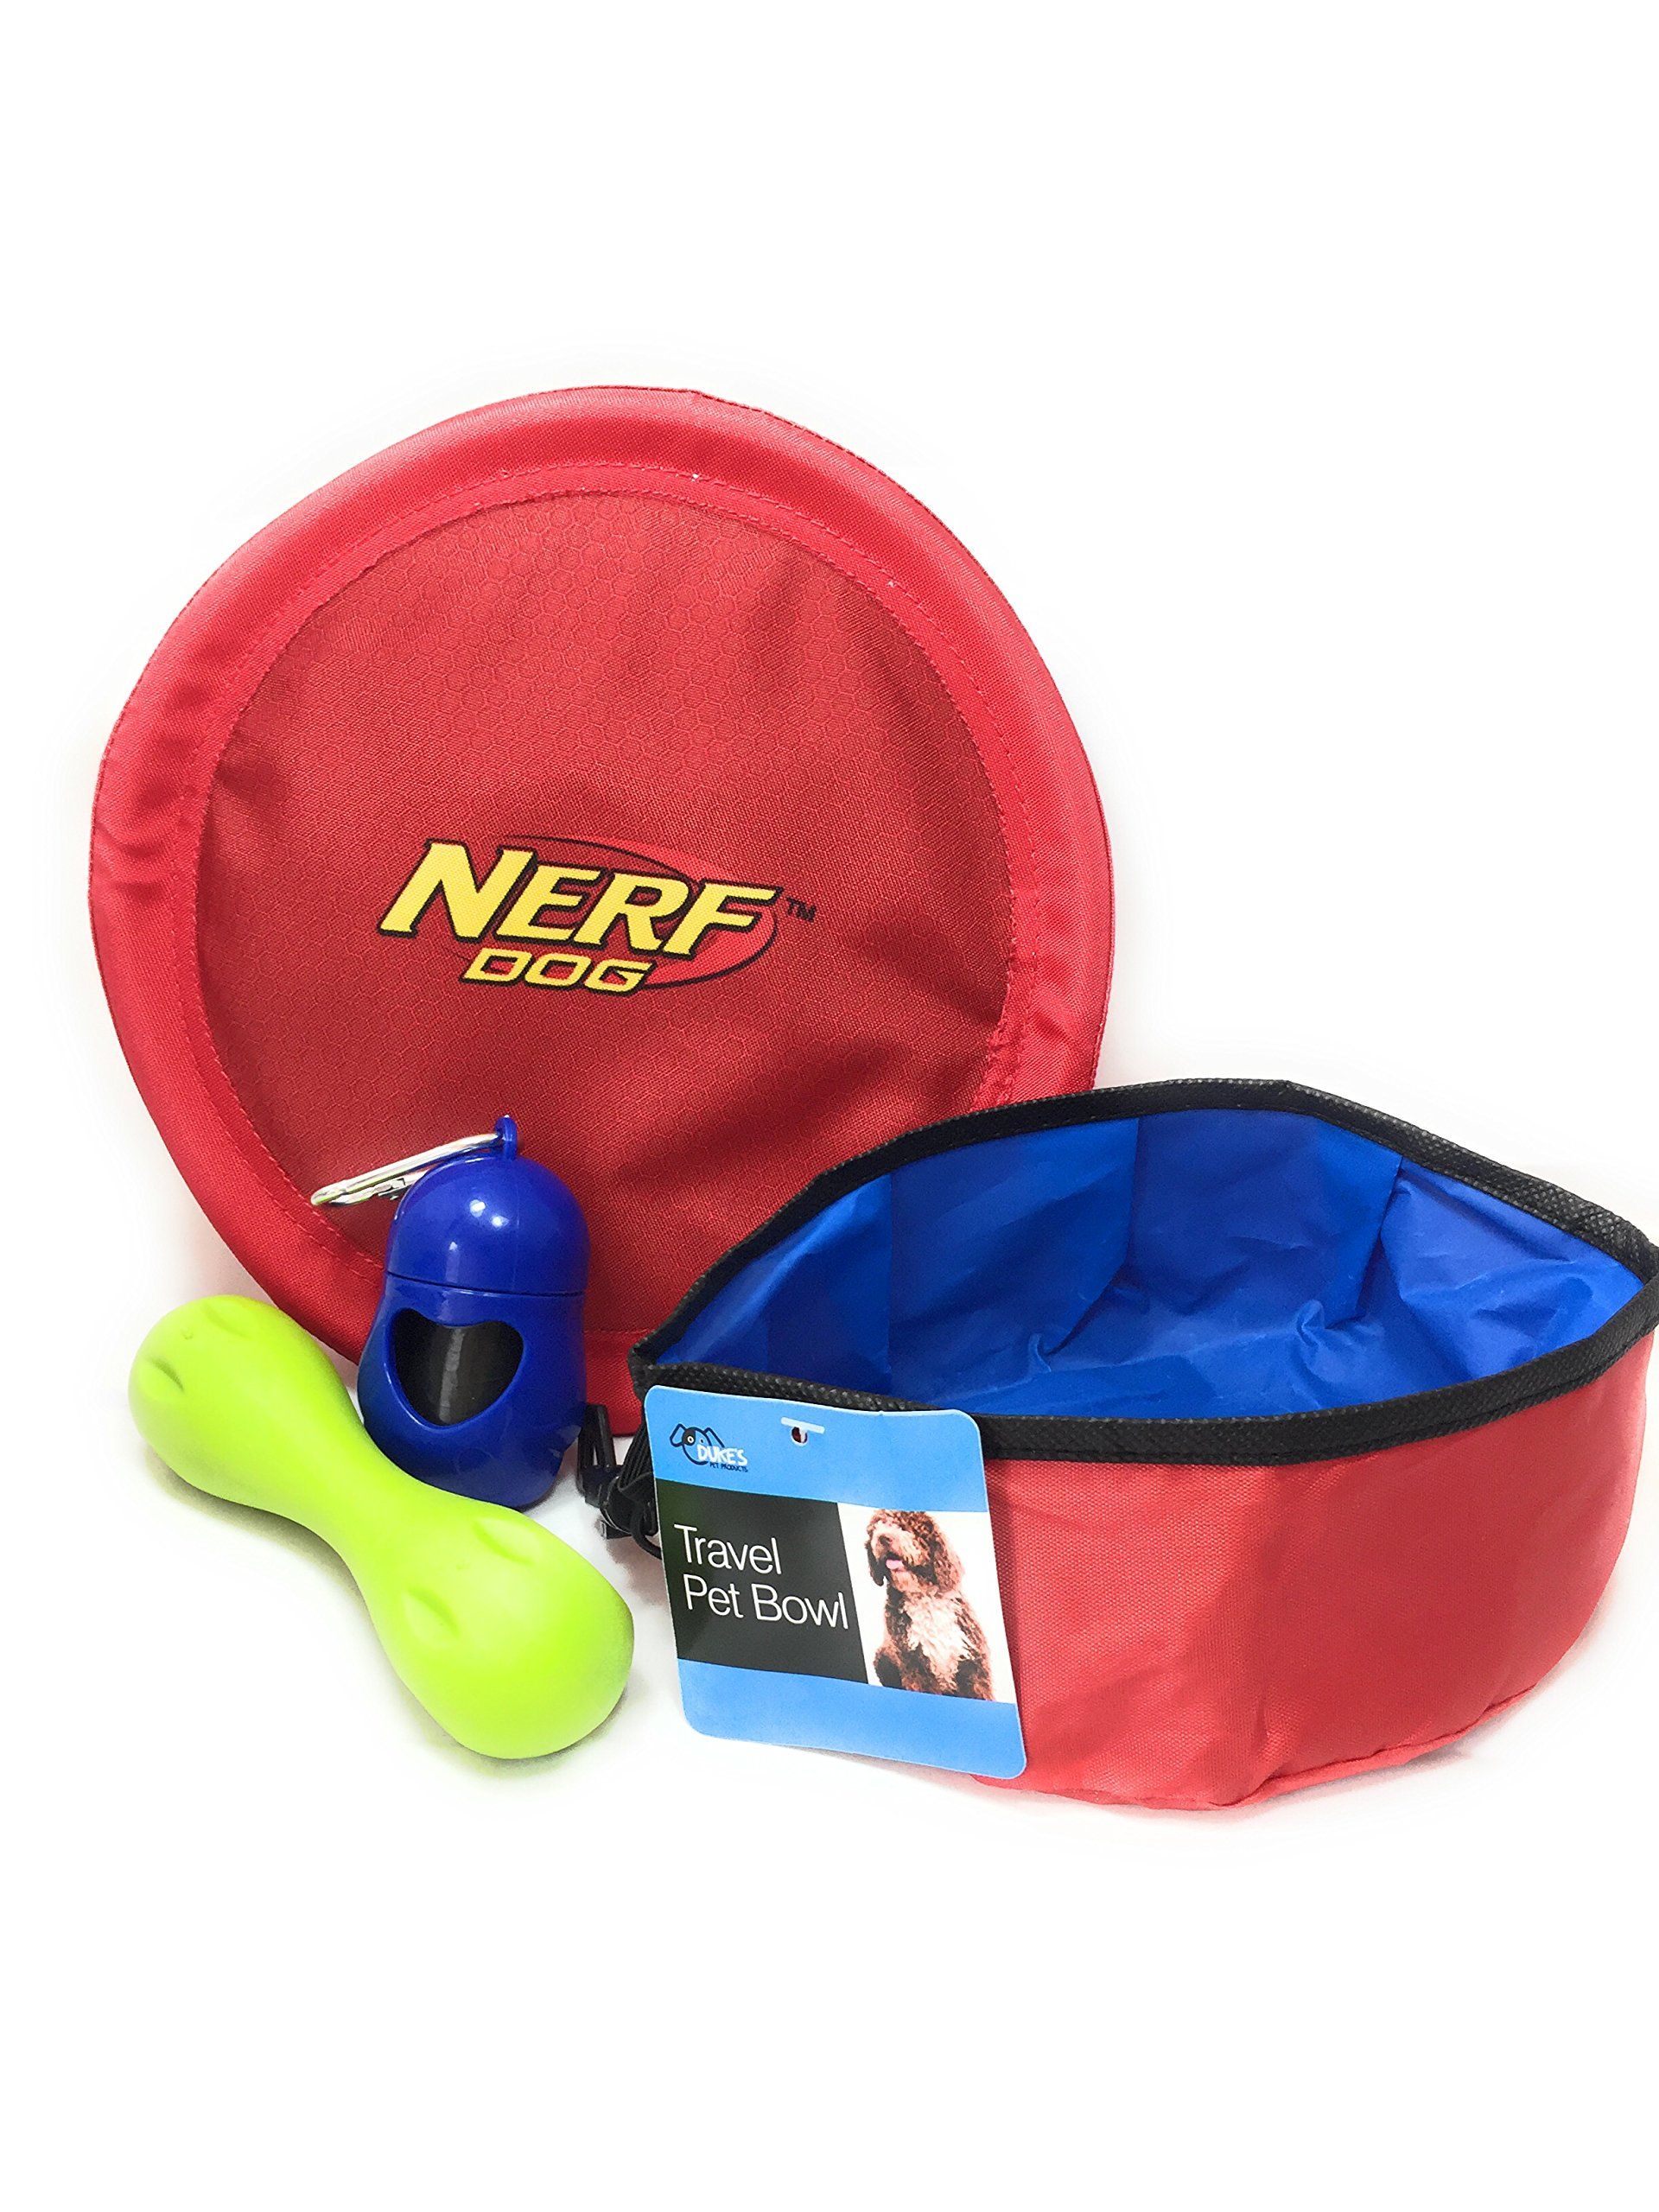 Dog Toys with 1 Medium Nerf Dog Flyer Flying Disc, 1 Rubber Bone, 1 Dispenser with 20 Poo Bags, and 1 Collapsible Travel Pet Bowl